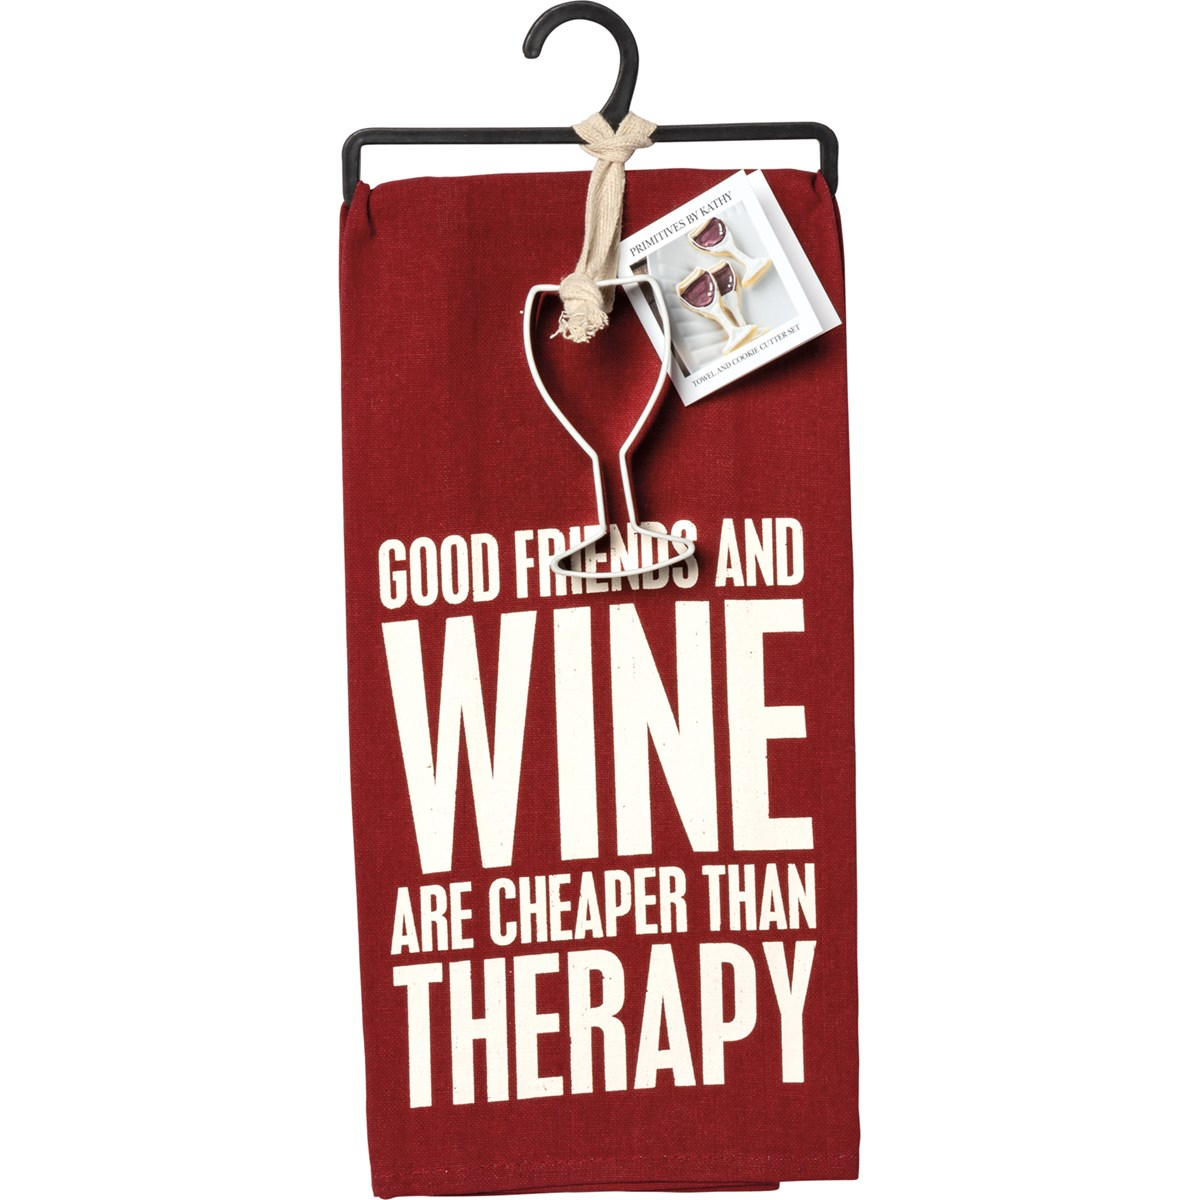 "Towel & Cutter Set - Good Friends And Wine - Towel: 18"" x 28"", Cutter: 2"" x 4"" x 1"" - Cotton, Metal"